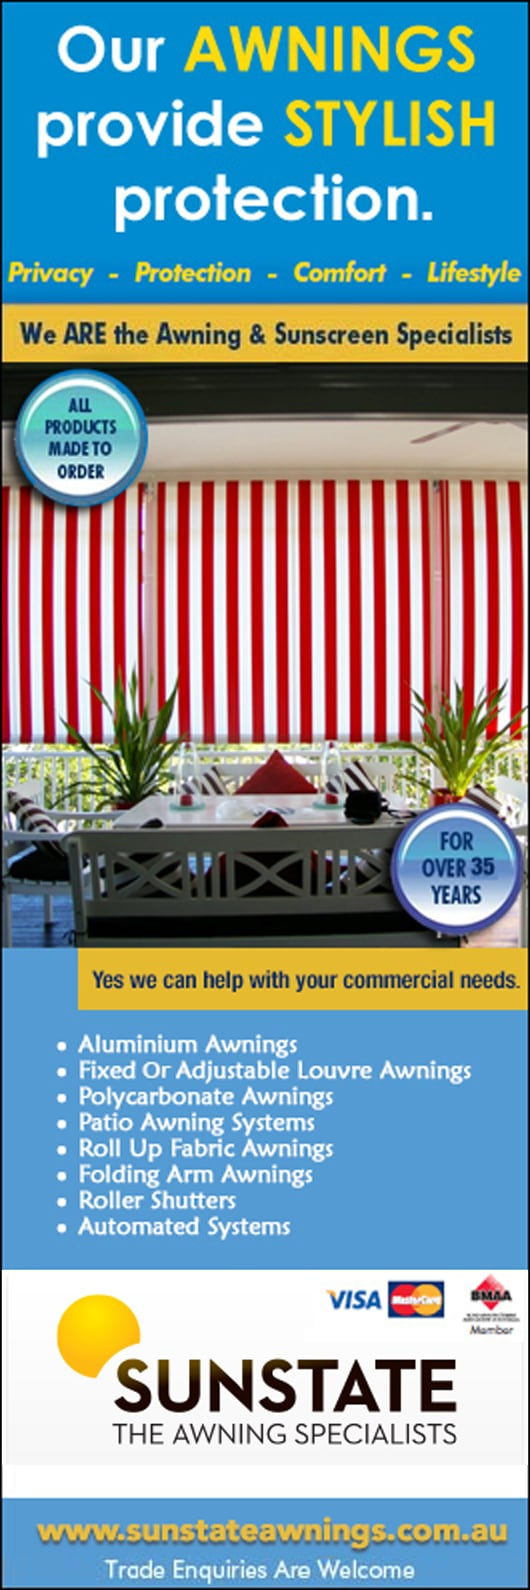 Sunstate Awnings - Awnings - 31 Lensworth St - Coopers Plains